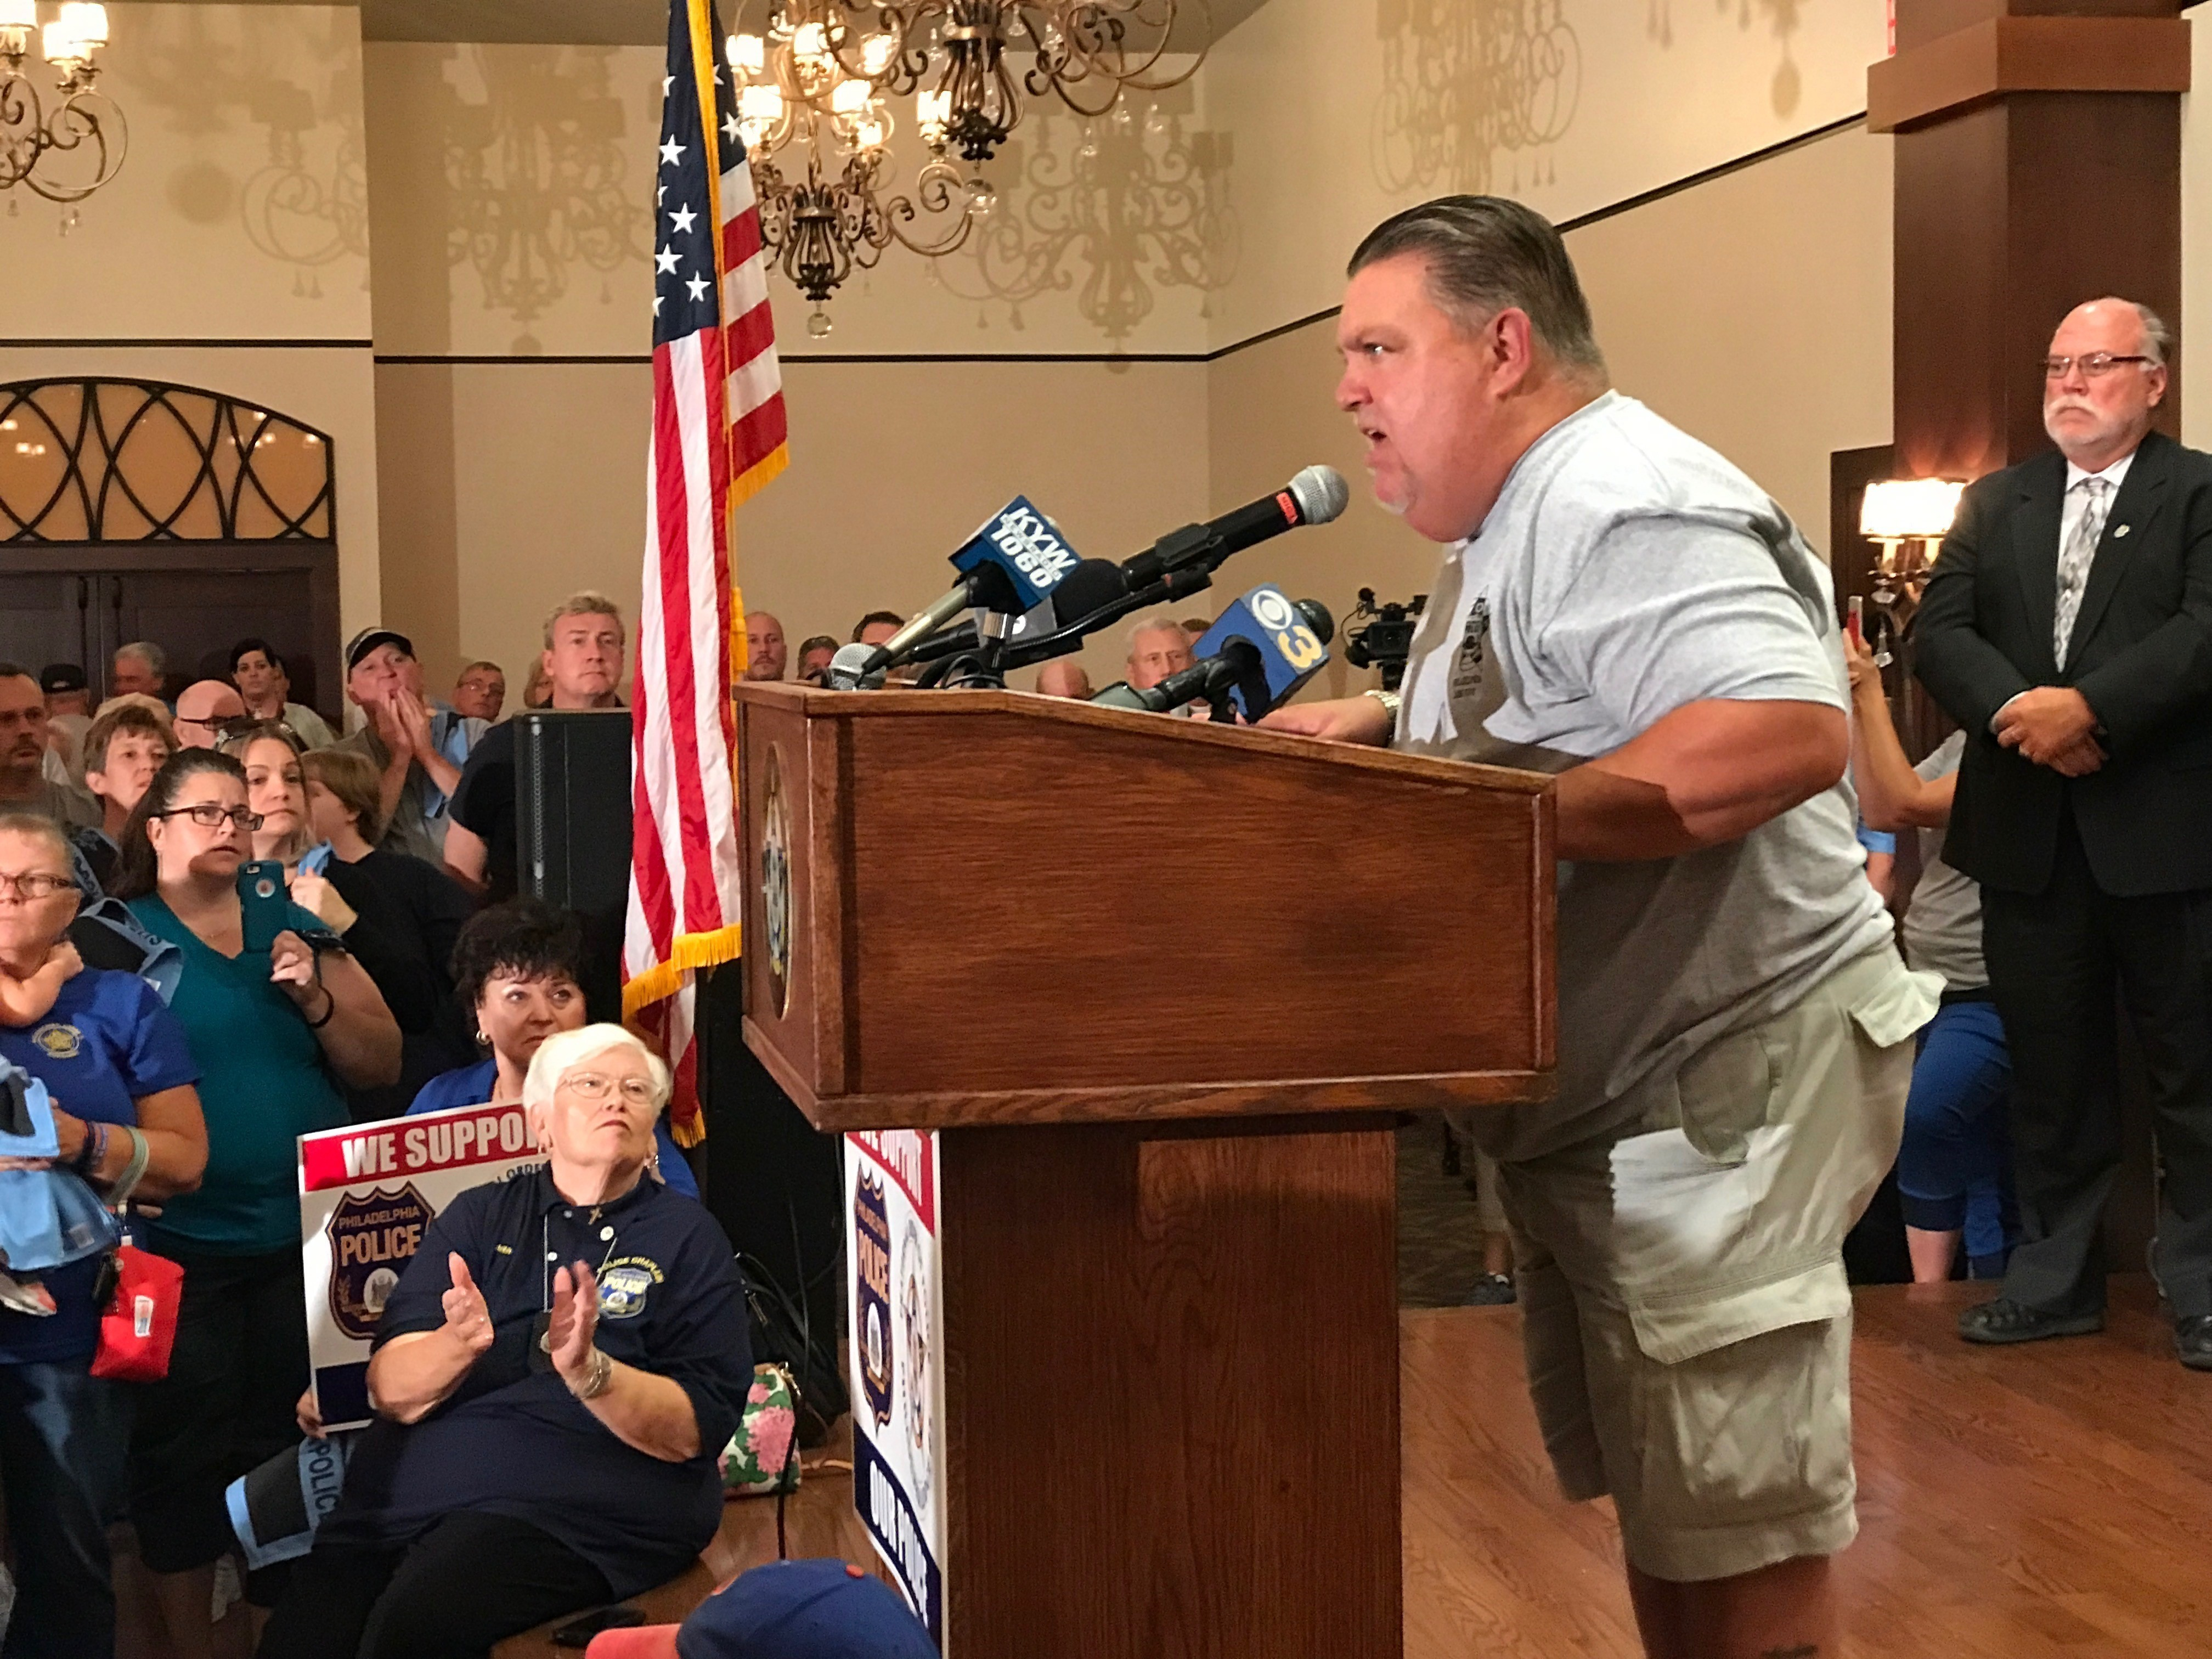 John McNesby, president of FOP Lodge 5, addresses a rally in support of police officers at the union´s headquarters in Northeast Philadelphia on Aug. 31, 2017.